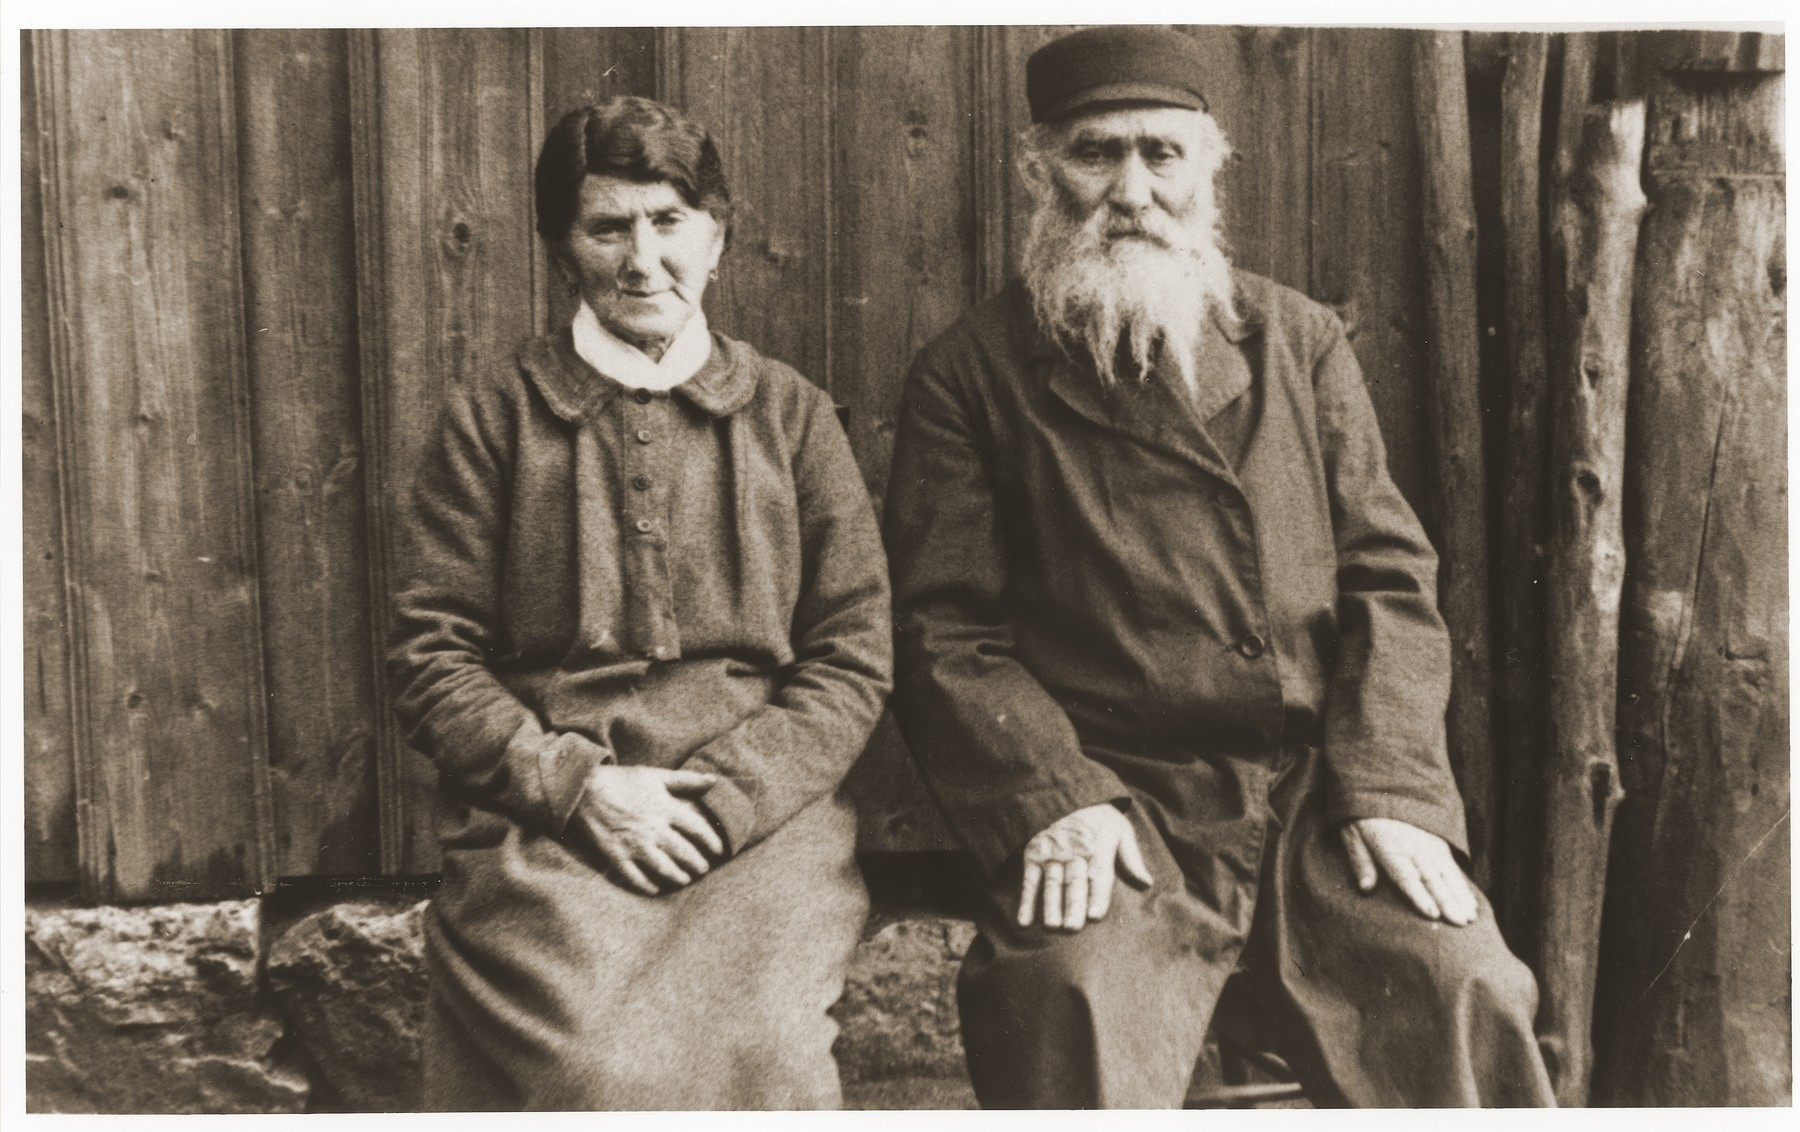 Portrait of an elderly Jewish couple seated outside in the Strzemieszyce Wielkie ghetto.  Pictured are Laja and Symcha Korzuch, the grandparents of David Bajtner.